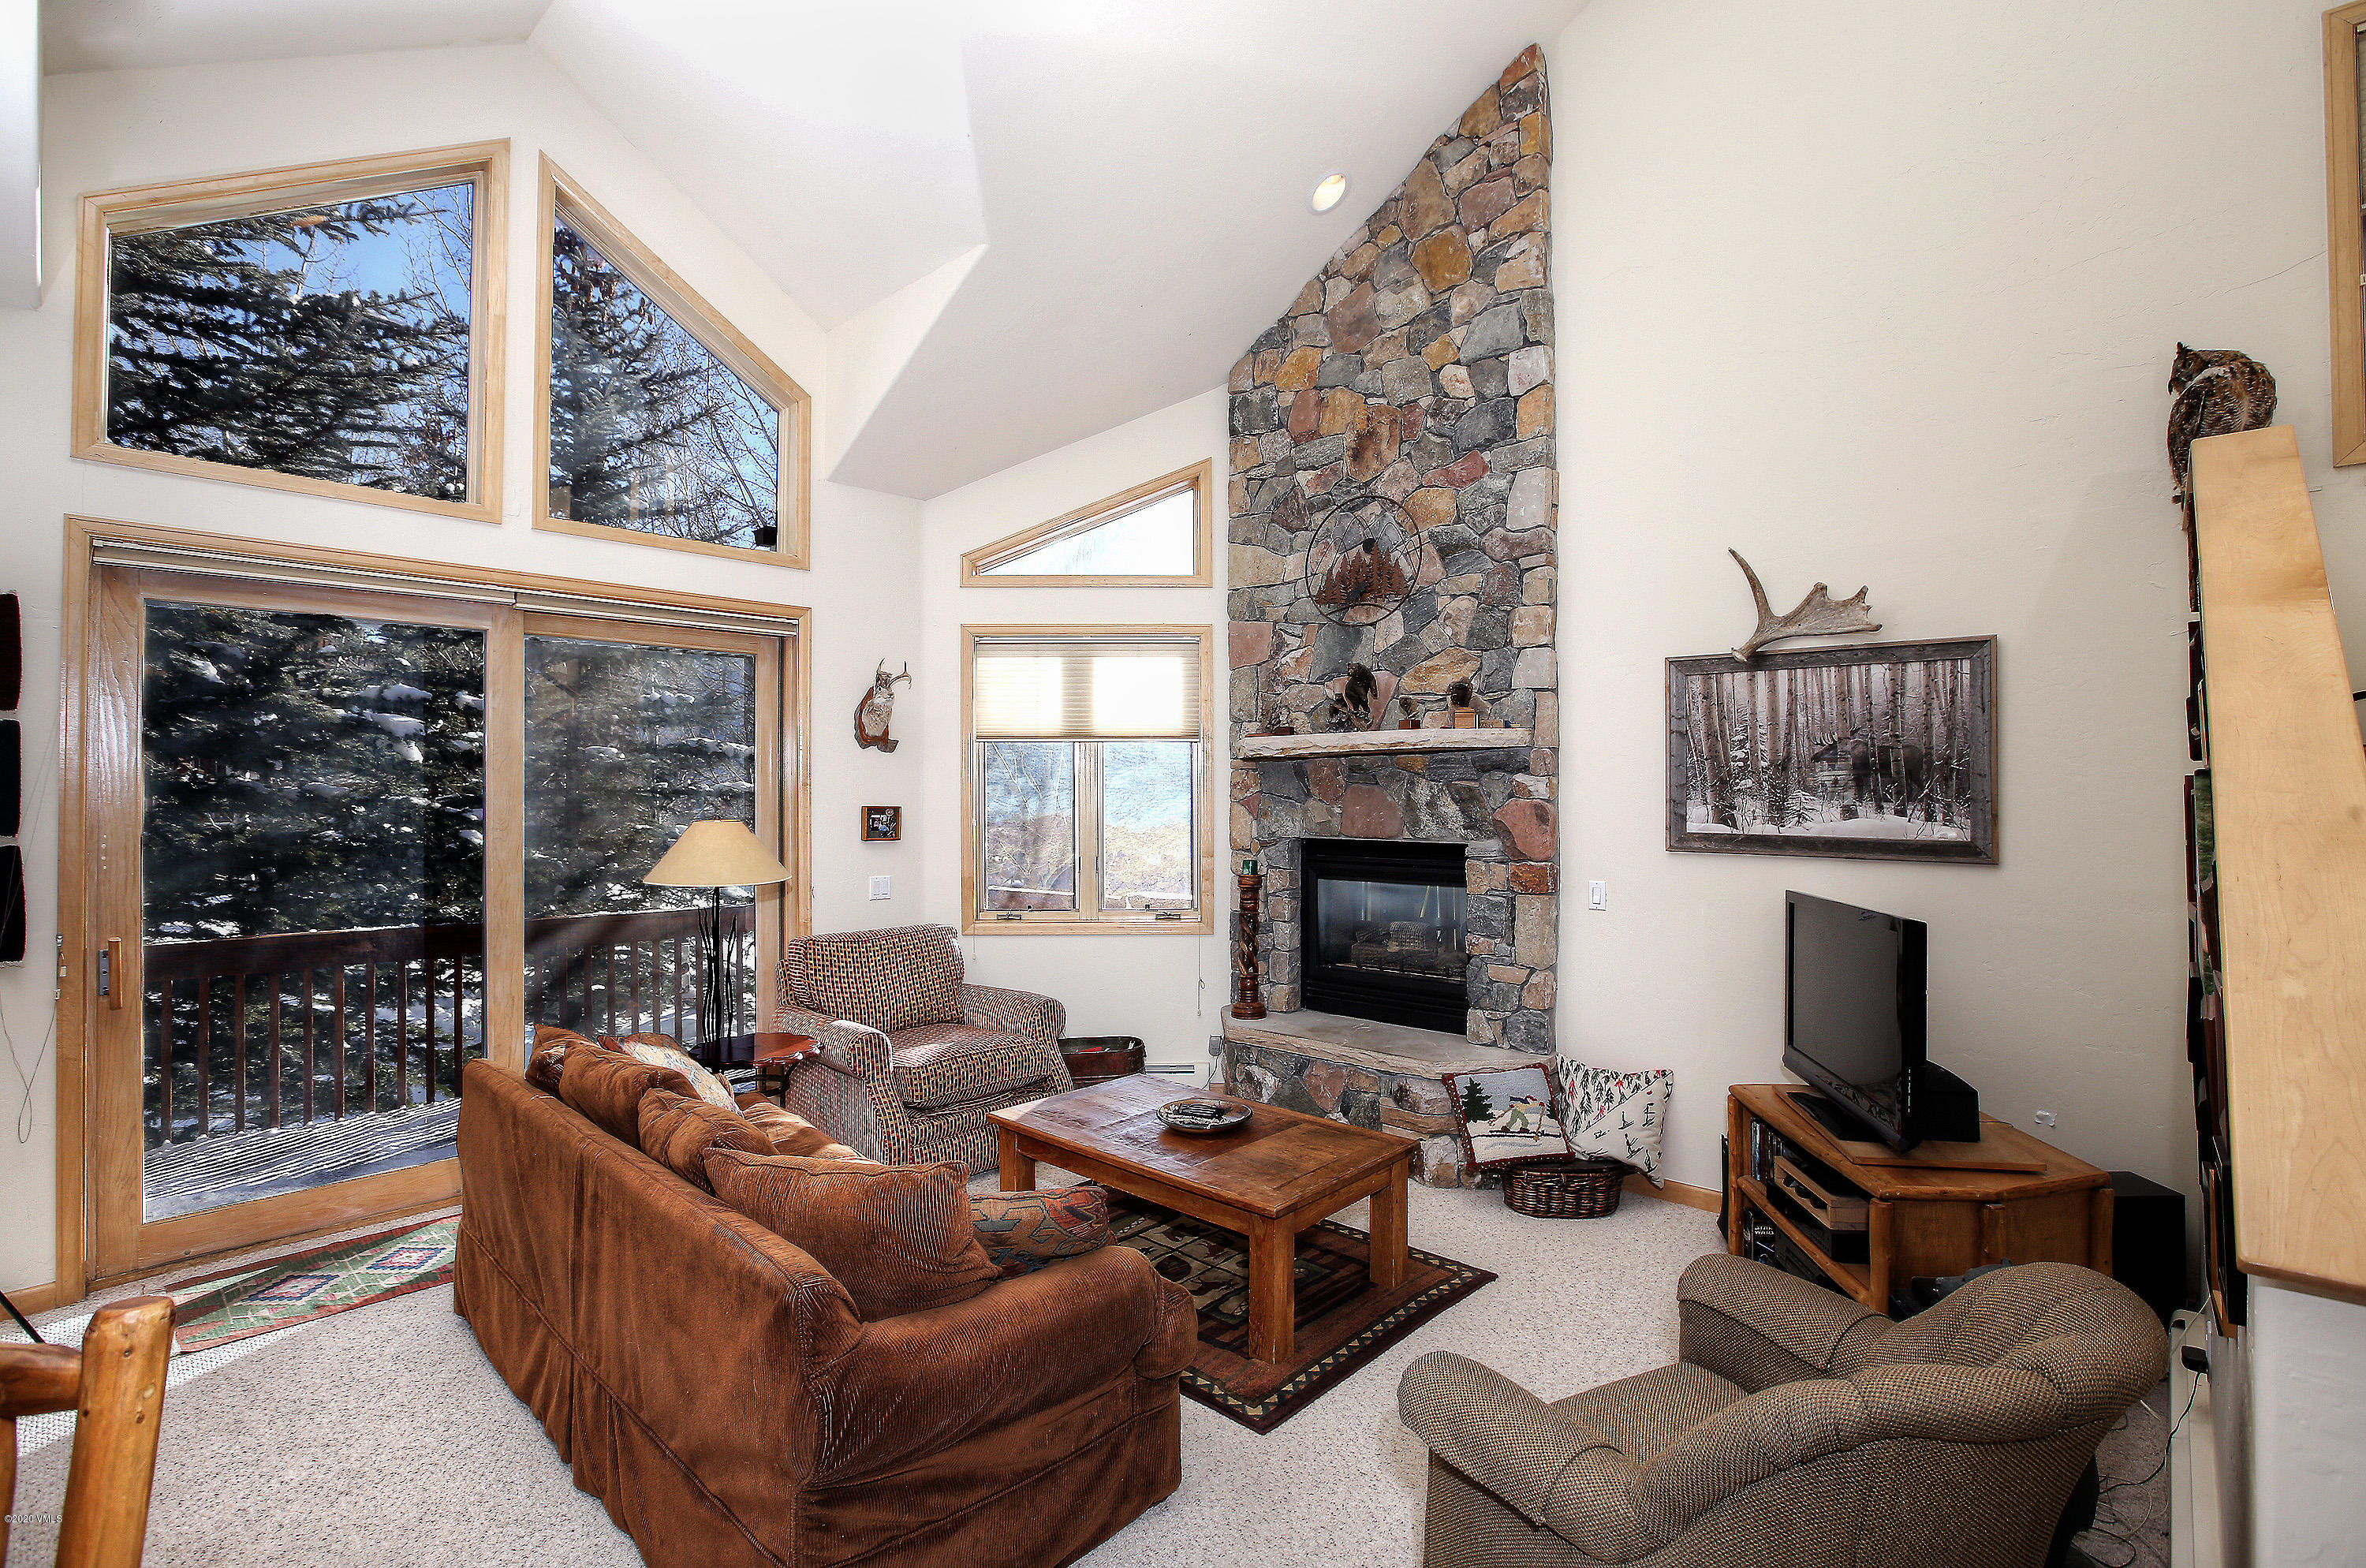 Rarely available well maintained Chateau Tremonte townhome. This light and bright end unit offers mountain views with a comfortable open floor plan, vaulted ceilings along with 3 spacious bedrooms, 3.5 baths, a heated two car garage, 2 decks and a large laundry room. Conveniently located close to shops and on the Town of Vail bus line. A must see!